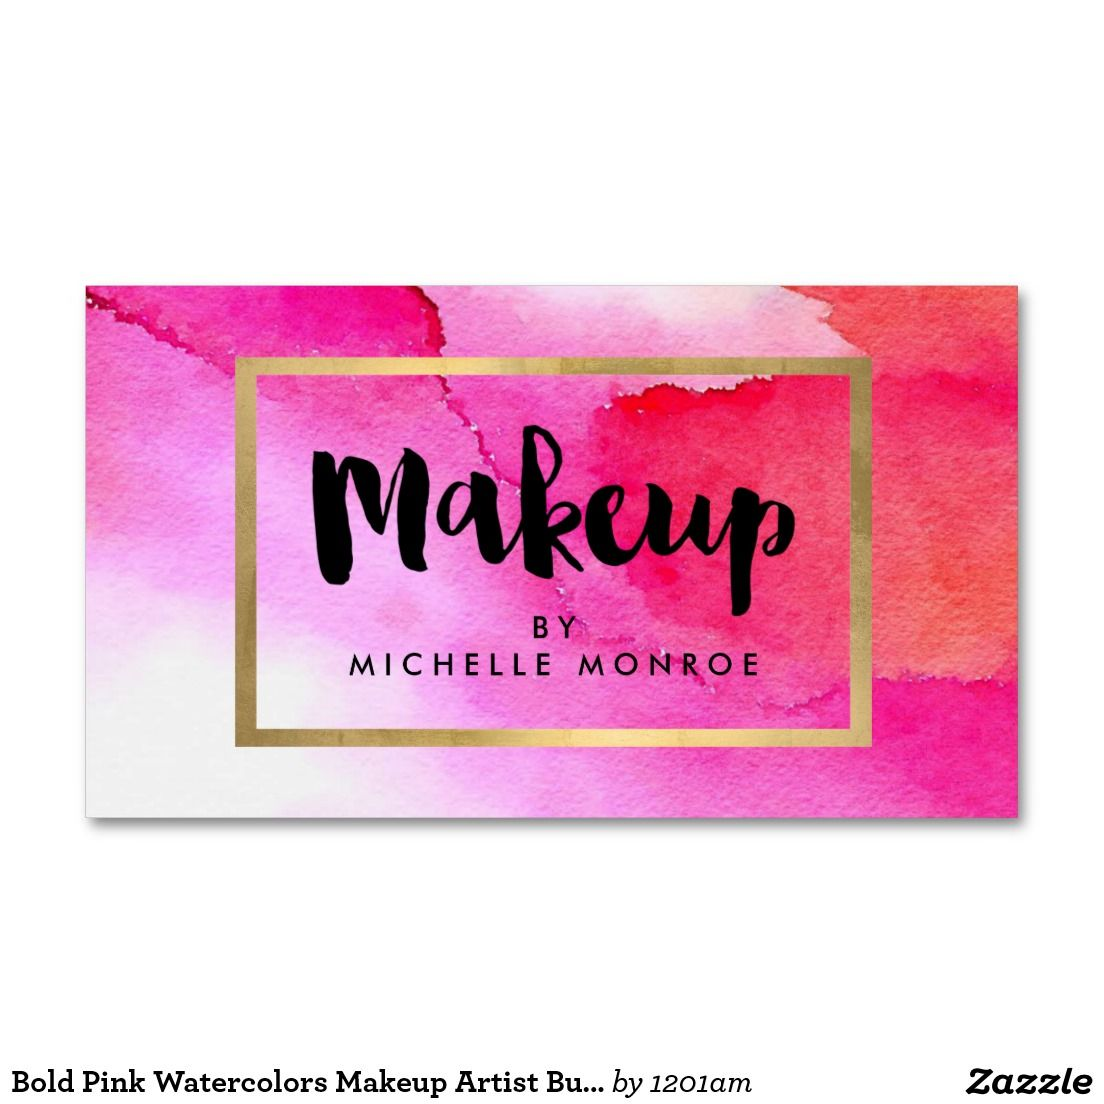 Bold Pink Watercolors Makeup Artist Business Card | Business Cards ...